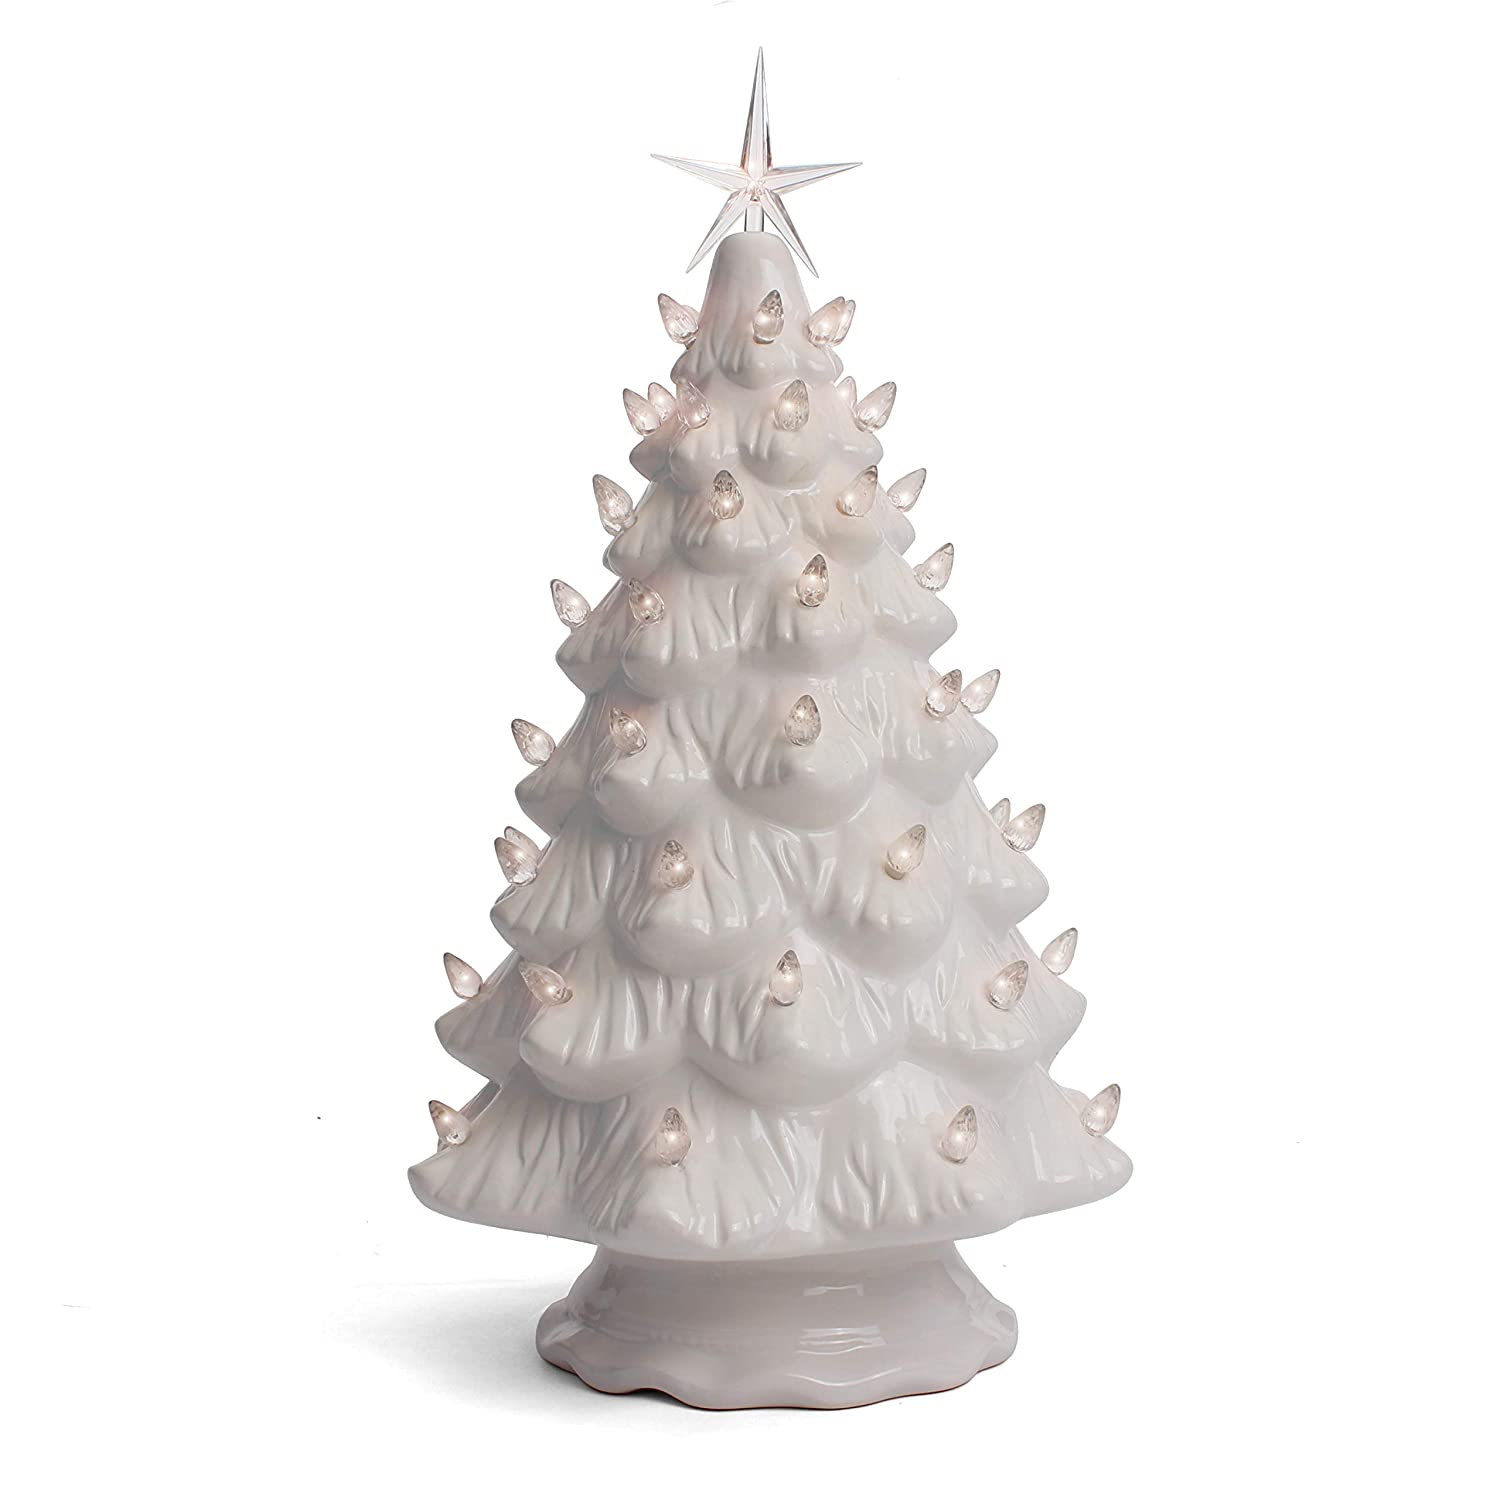 Milltown Merchants Ceramic Christmas Tree Tabletop Christmas Tree Lights 15 5 Large White Christmas Tree White Lights Lighted Vintage Ceramic